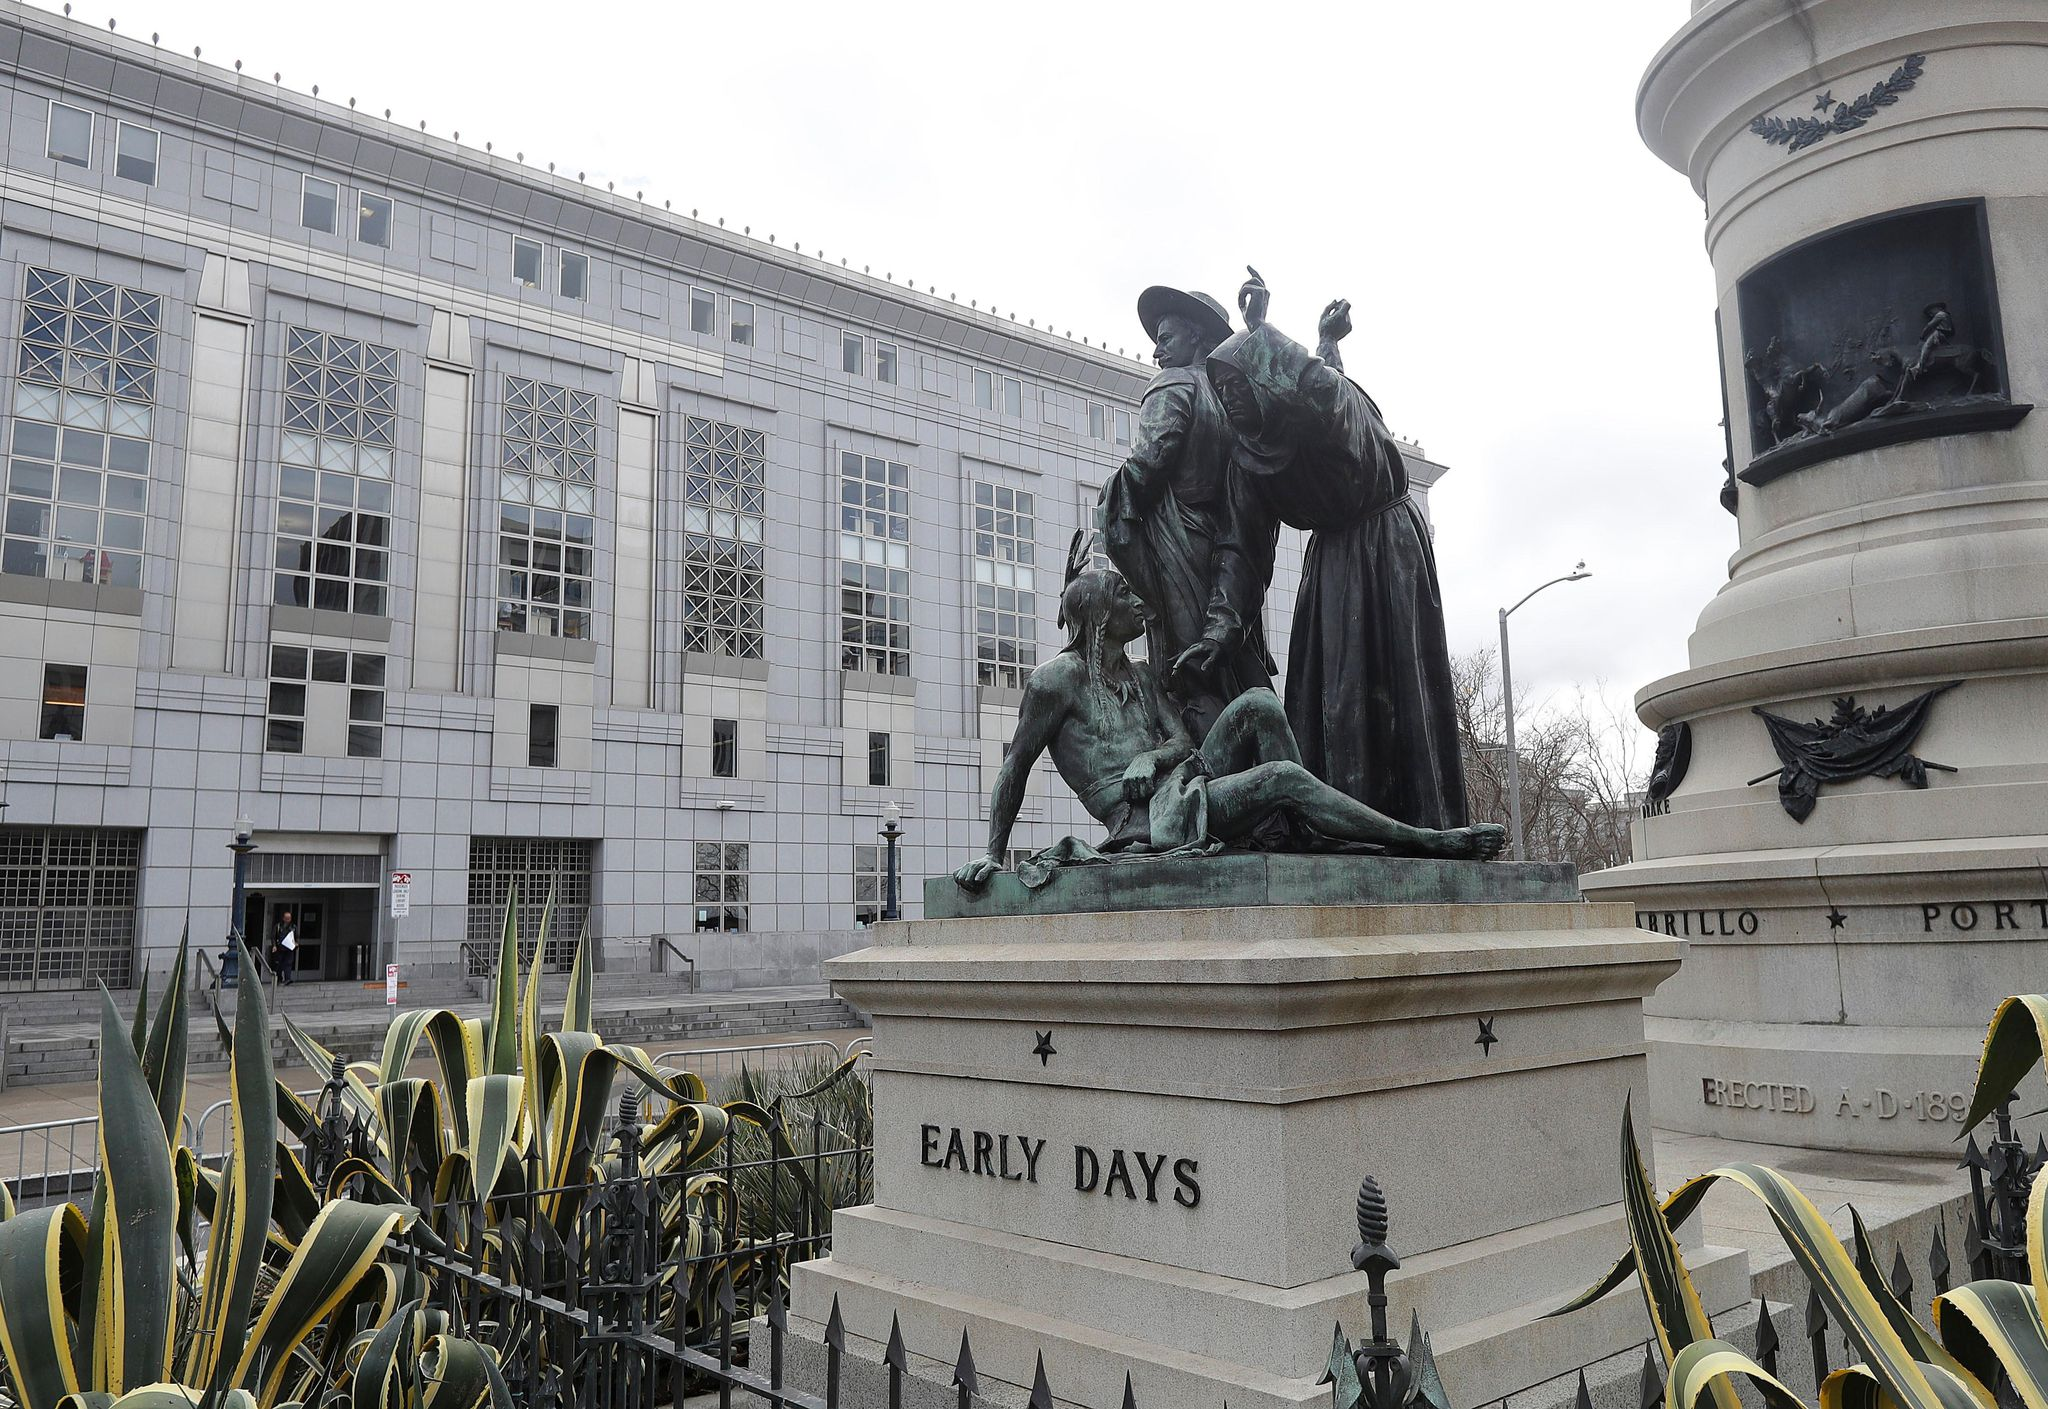 San Francisco statue that some call racist is removed - Washington Times